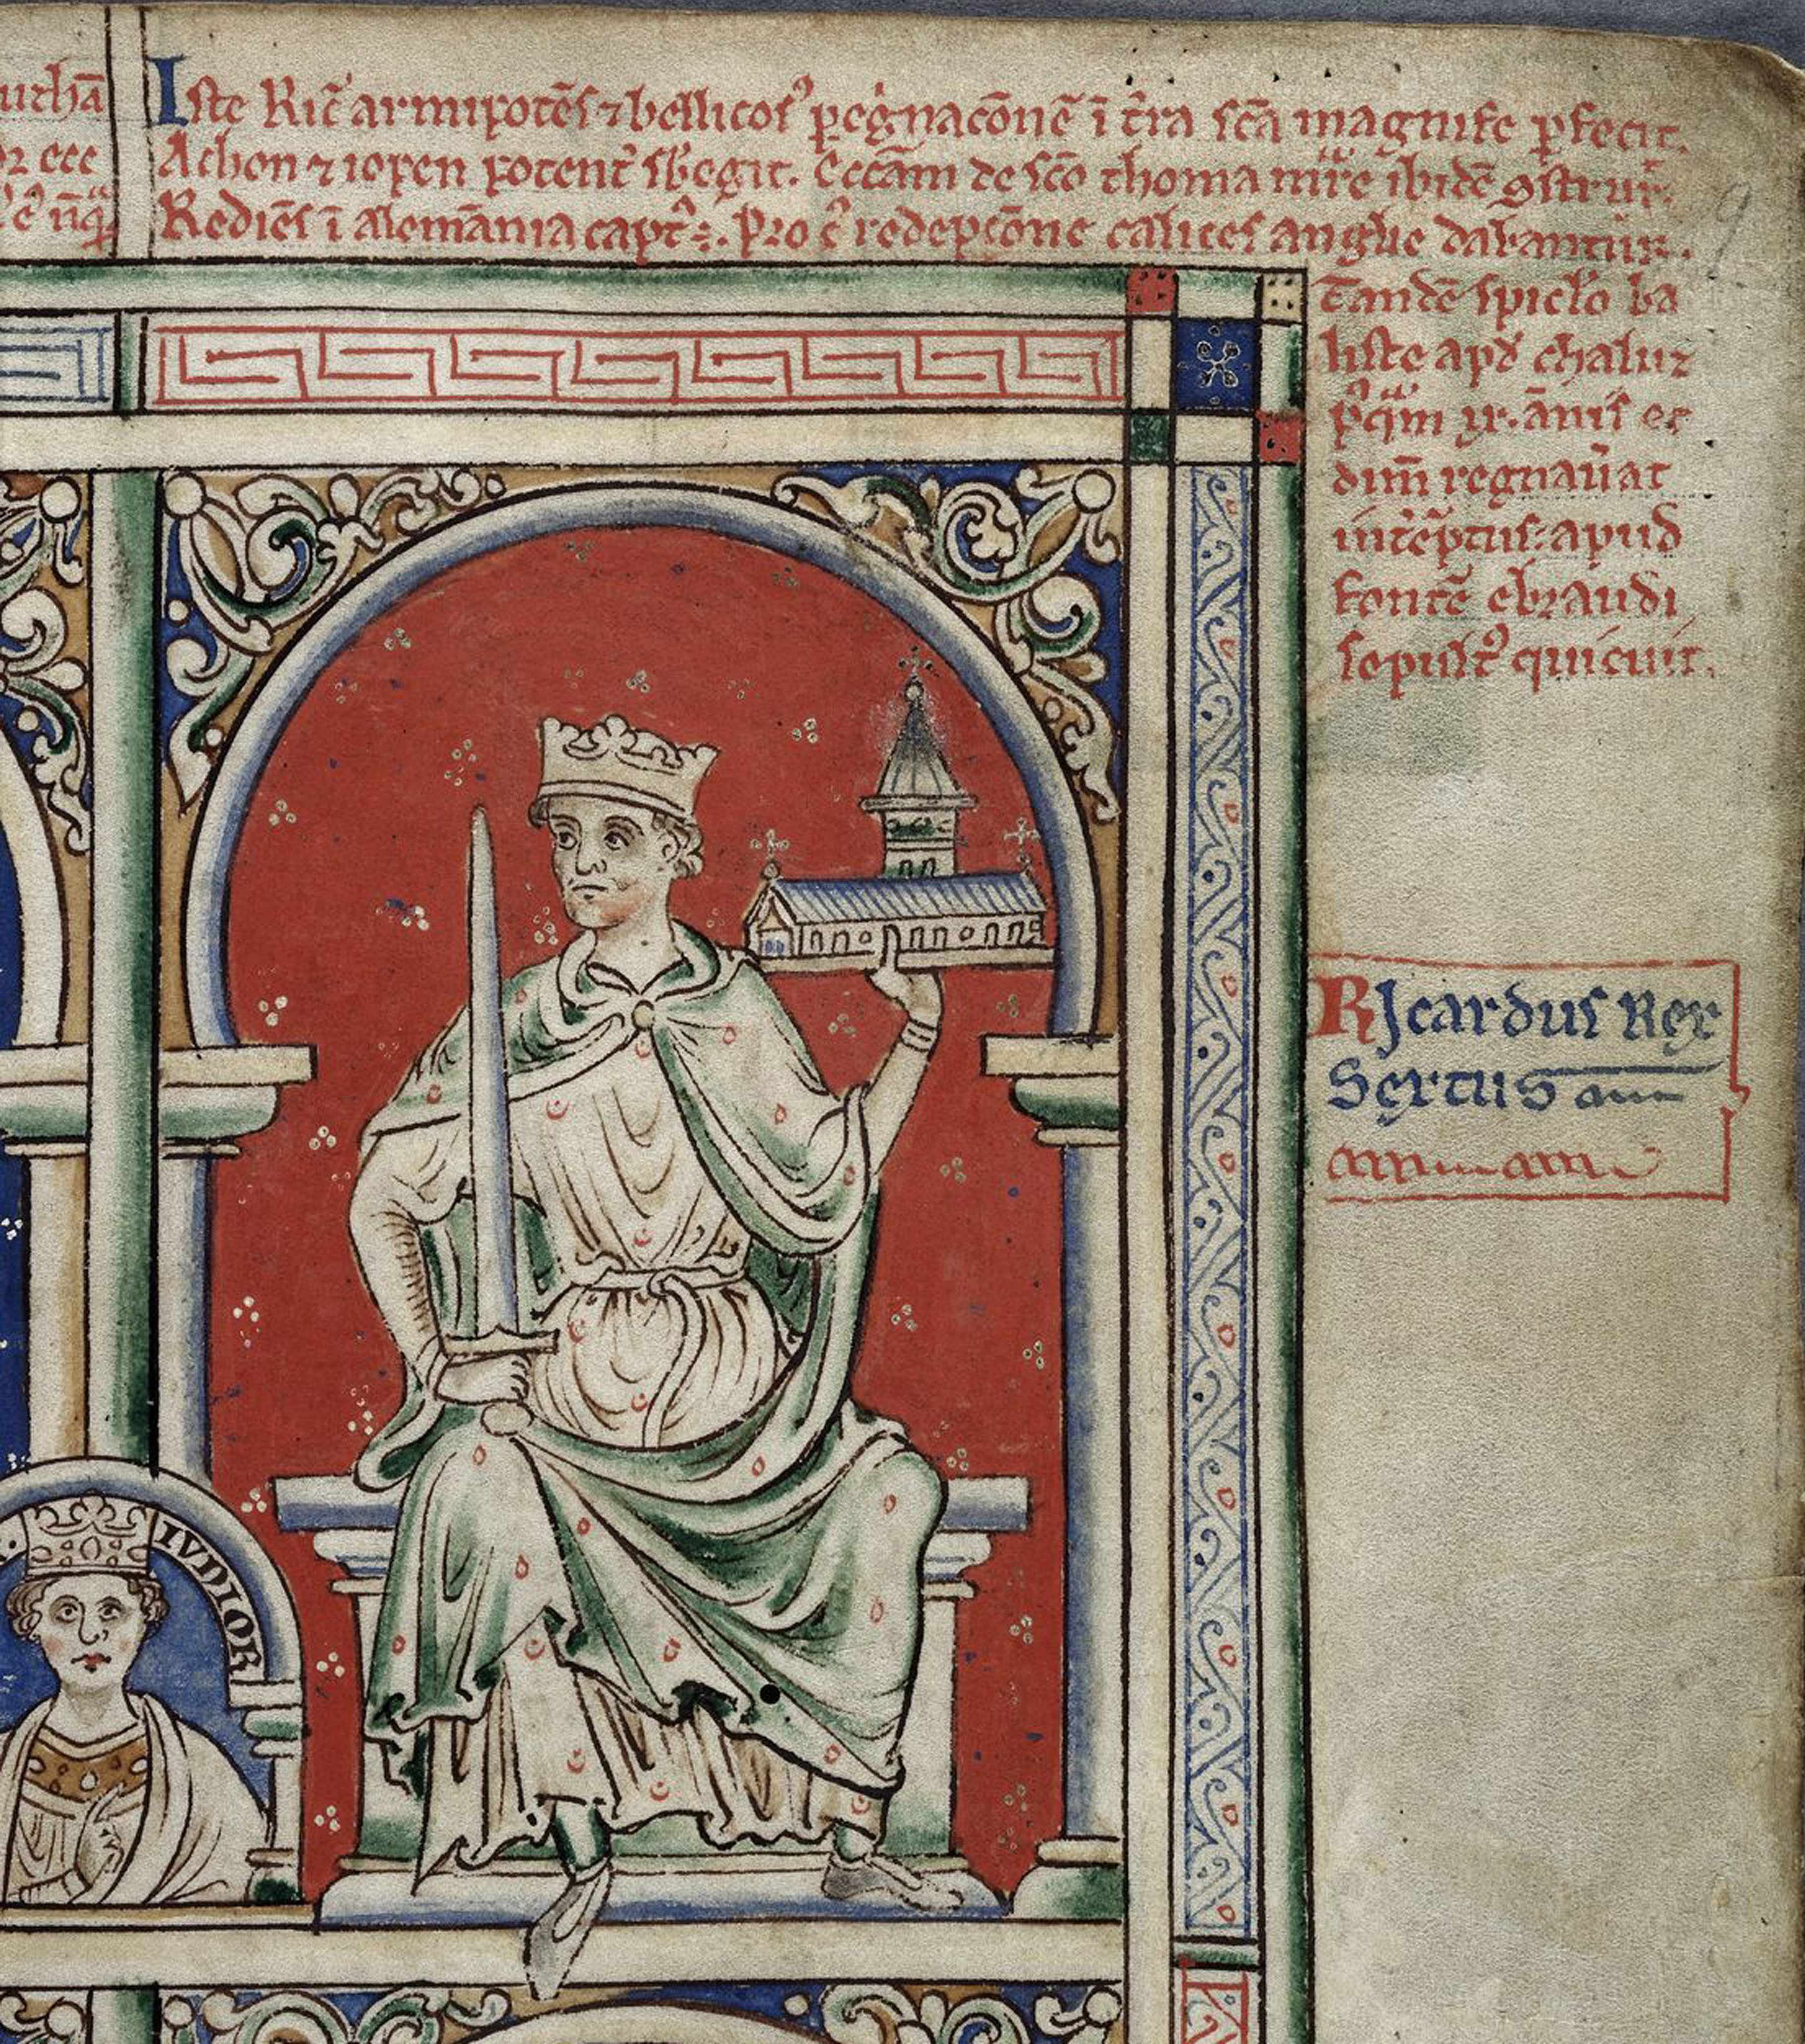 """Richard I (also known as Richard the Lionheart) frequently dated documents with the 'regnal year'. An example of this might be """"Winchester on the 23 day of April in the fifth year of our reign"""", which would translate to 23 April 1194. (Fine Art Images/Heritage Images/Getty Images)"""